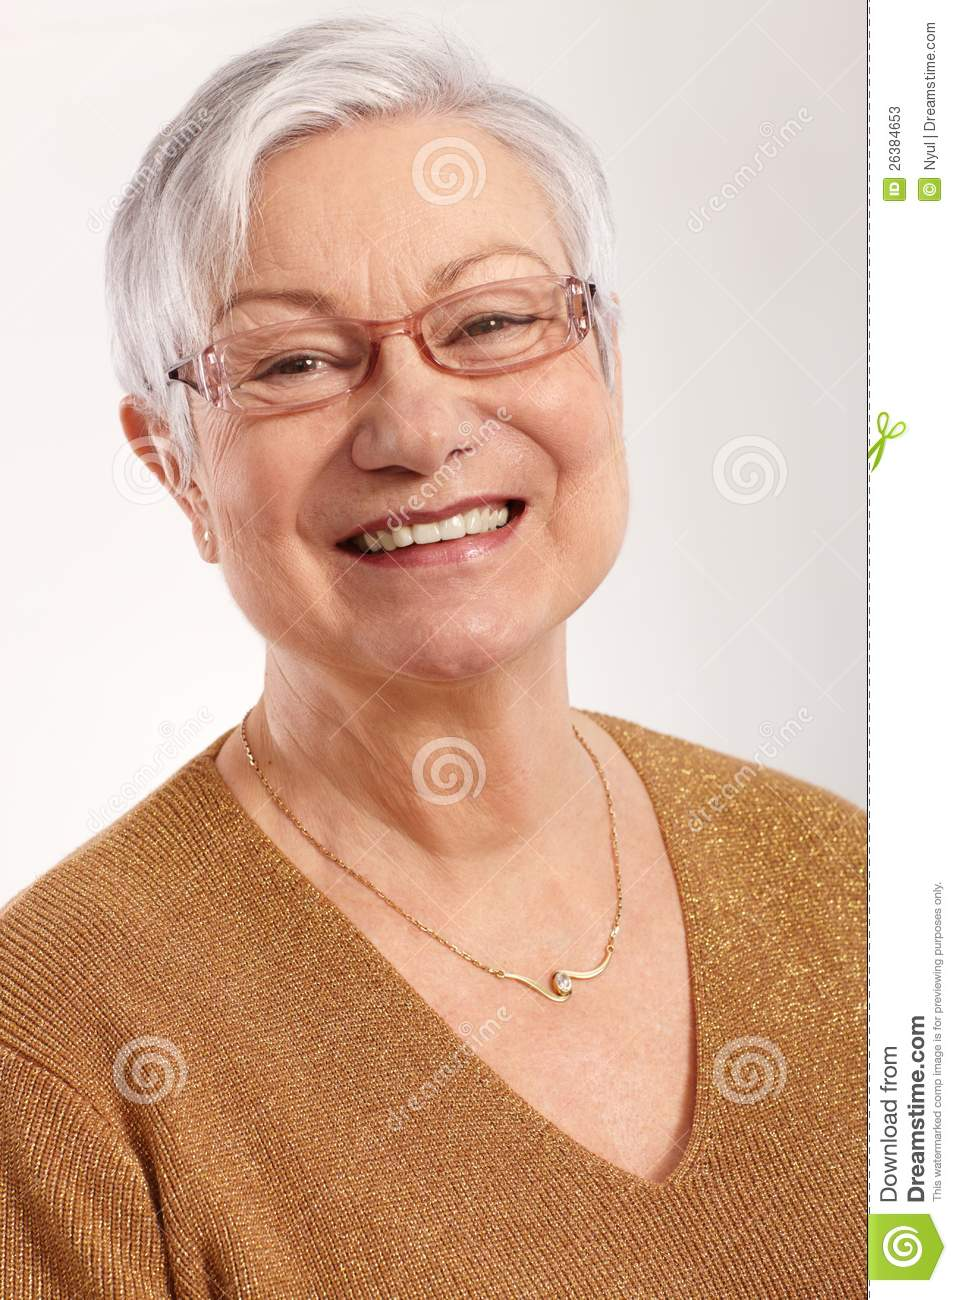 grannies Very with glasses old